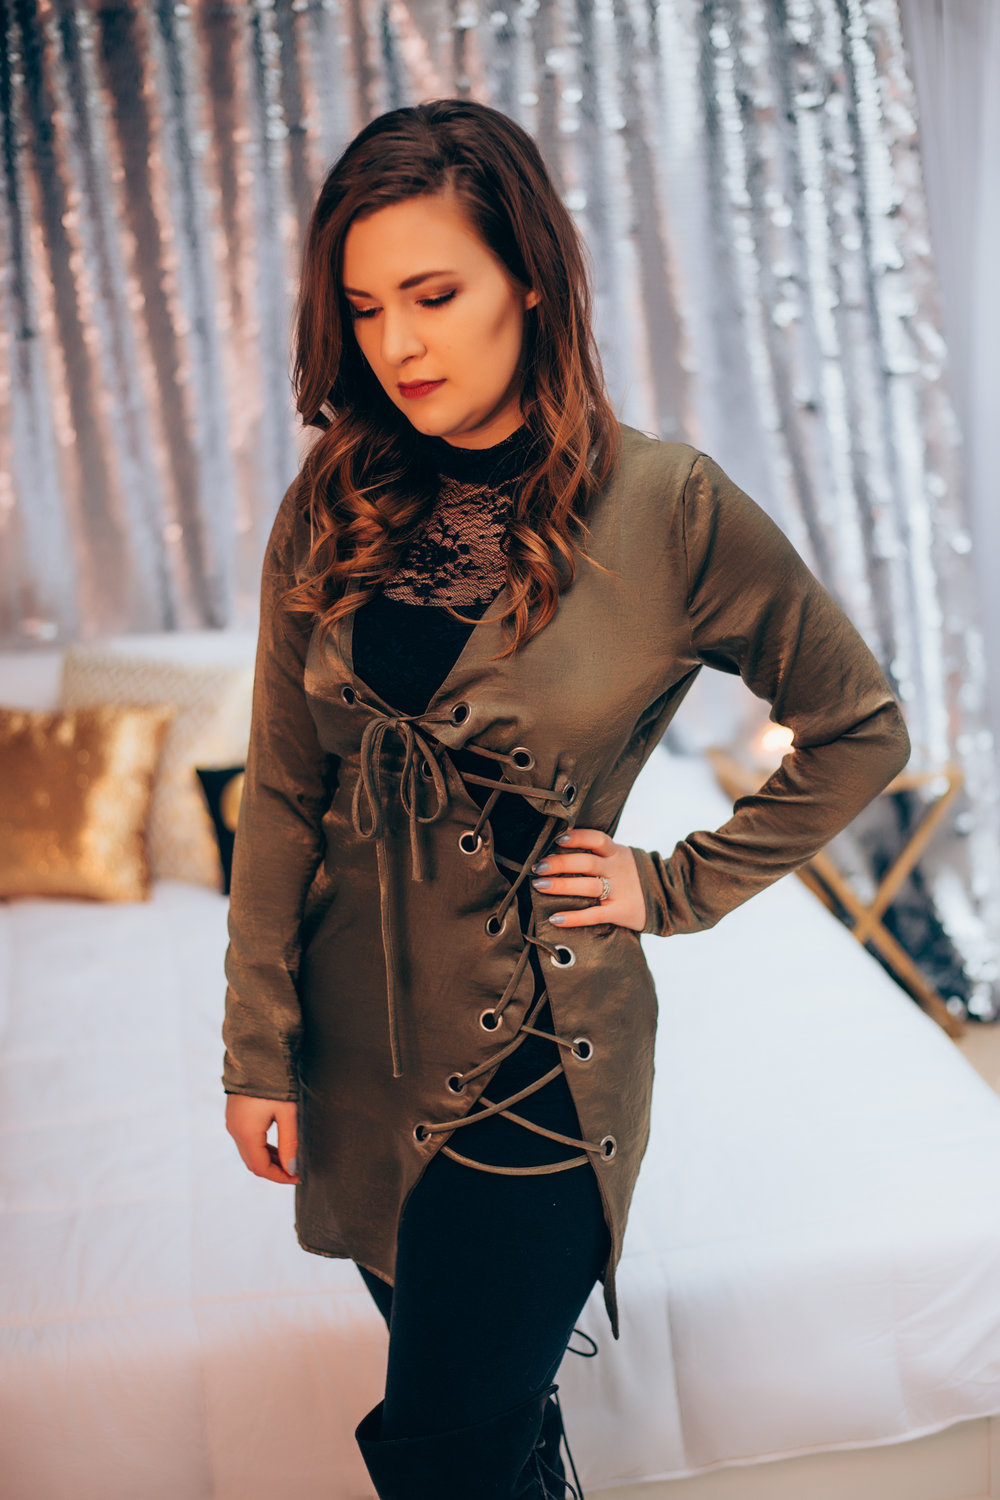 Black friday sale haul from shein holiday style fashion Christmas outfit ideas-26.jpg